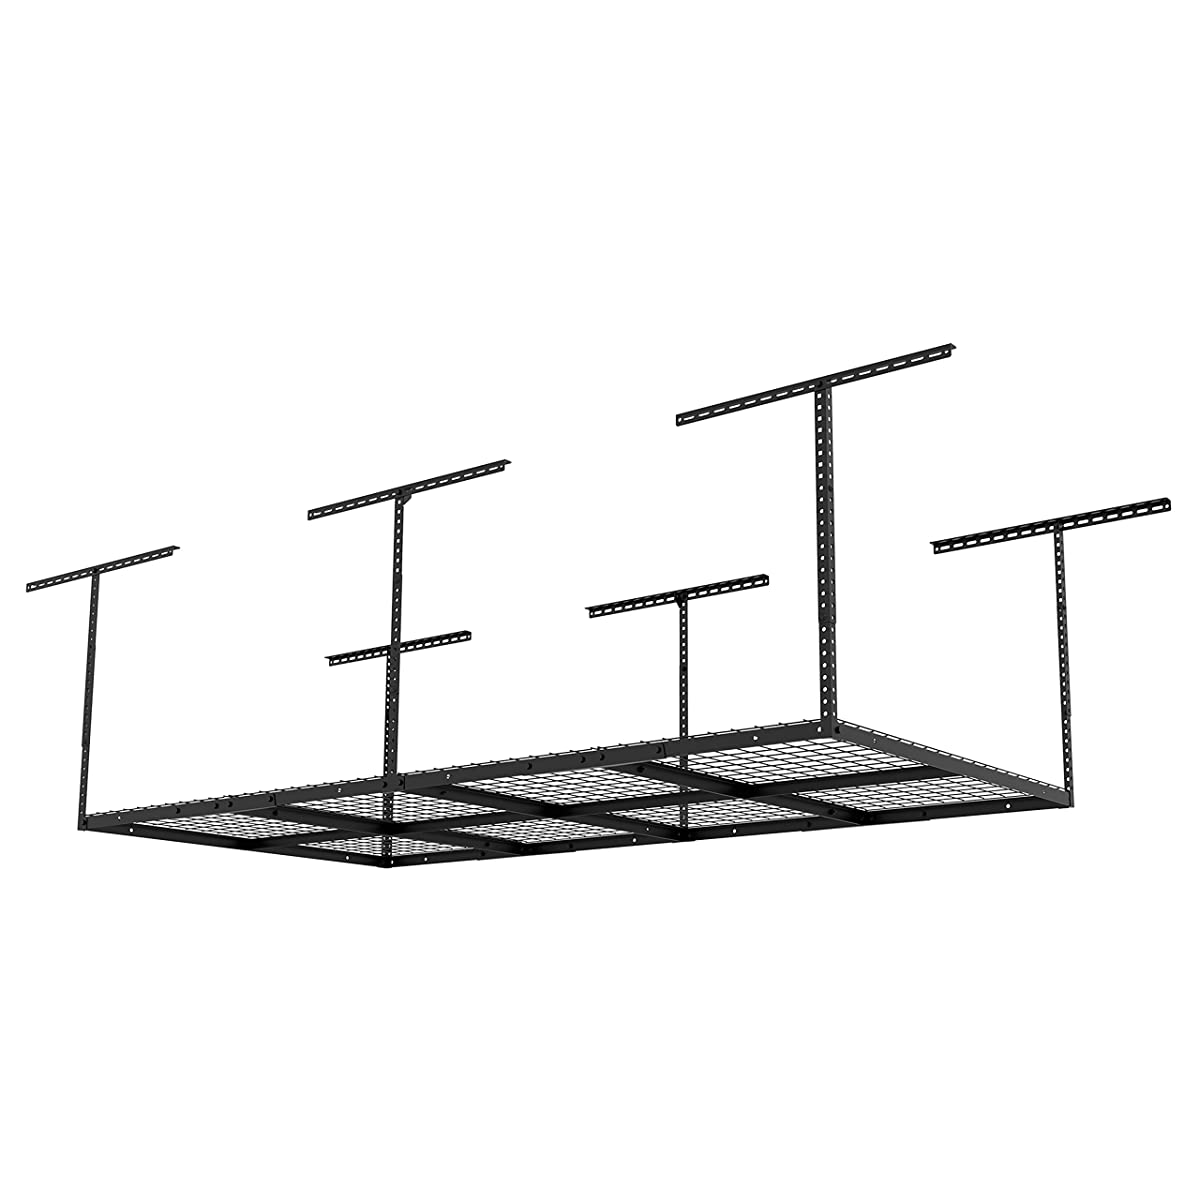 "FLEXIMOUNTS 4x8 Overhead Garage Storage Rack Adjustable Ceiling Garage Rack Heavy Duty, 96"" Length x 48"" Width x (22-40"" Ceiling Dropdown), Black (Two-Color Options)"